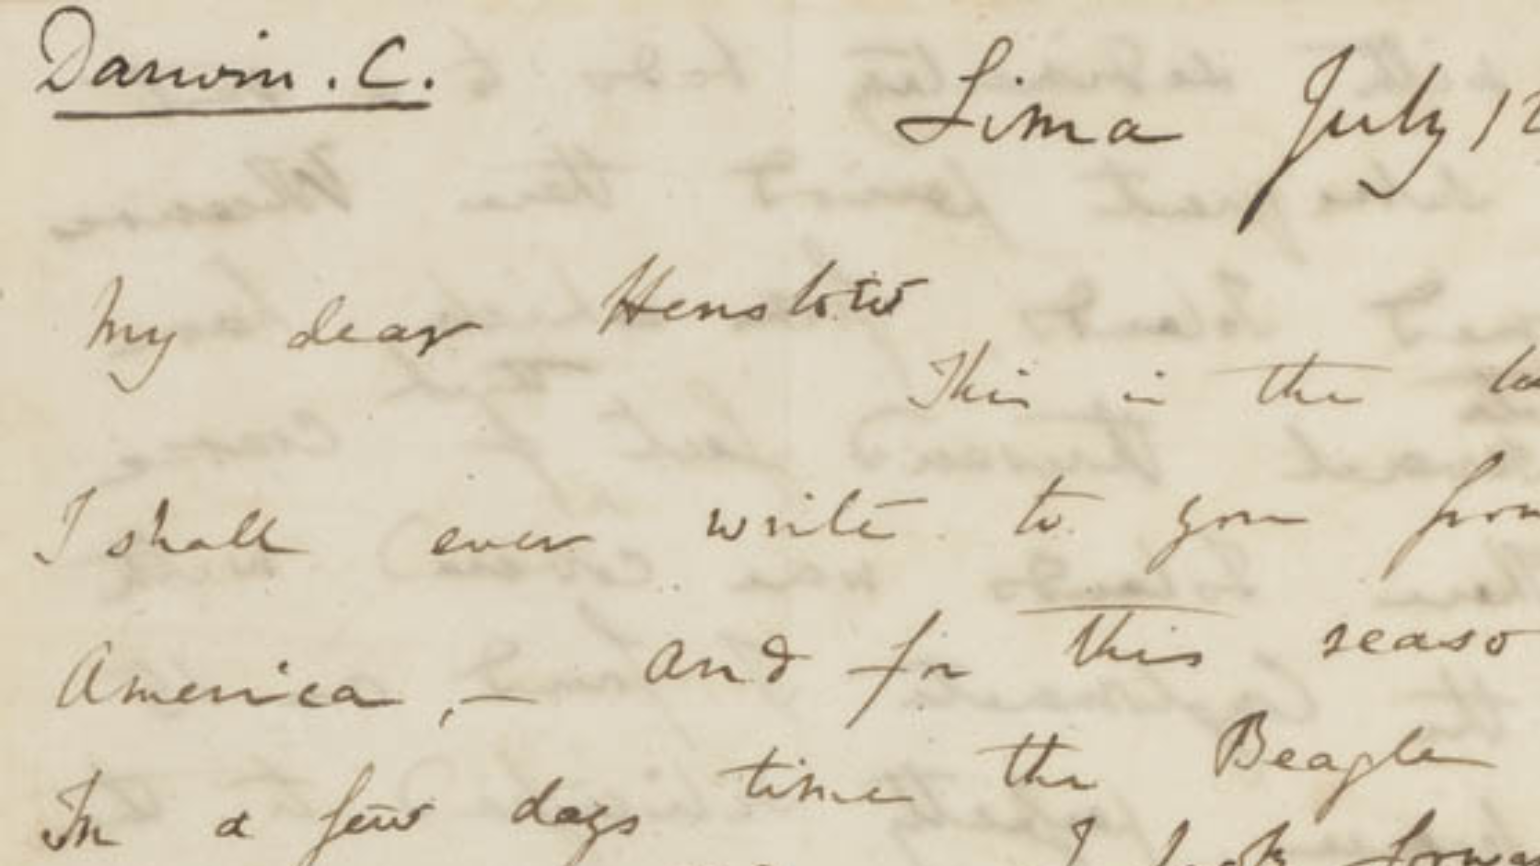 Charles Darwin writes to his Professor at Cambridge as he leaves the shores of South America for the Galapagos Islands on board the H.M.S. Beagle, summer 1835